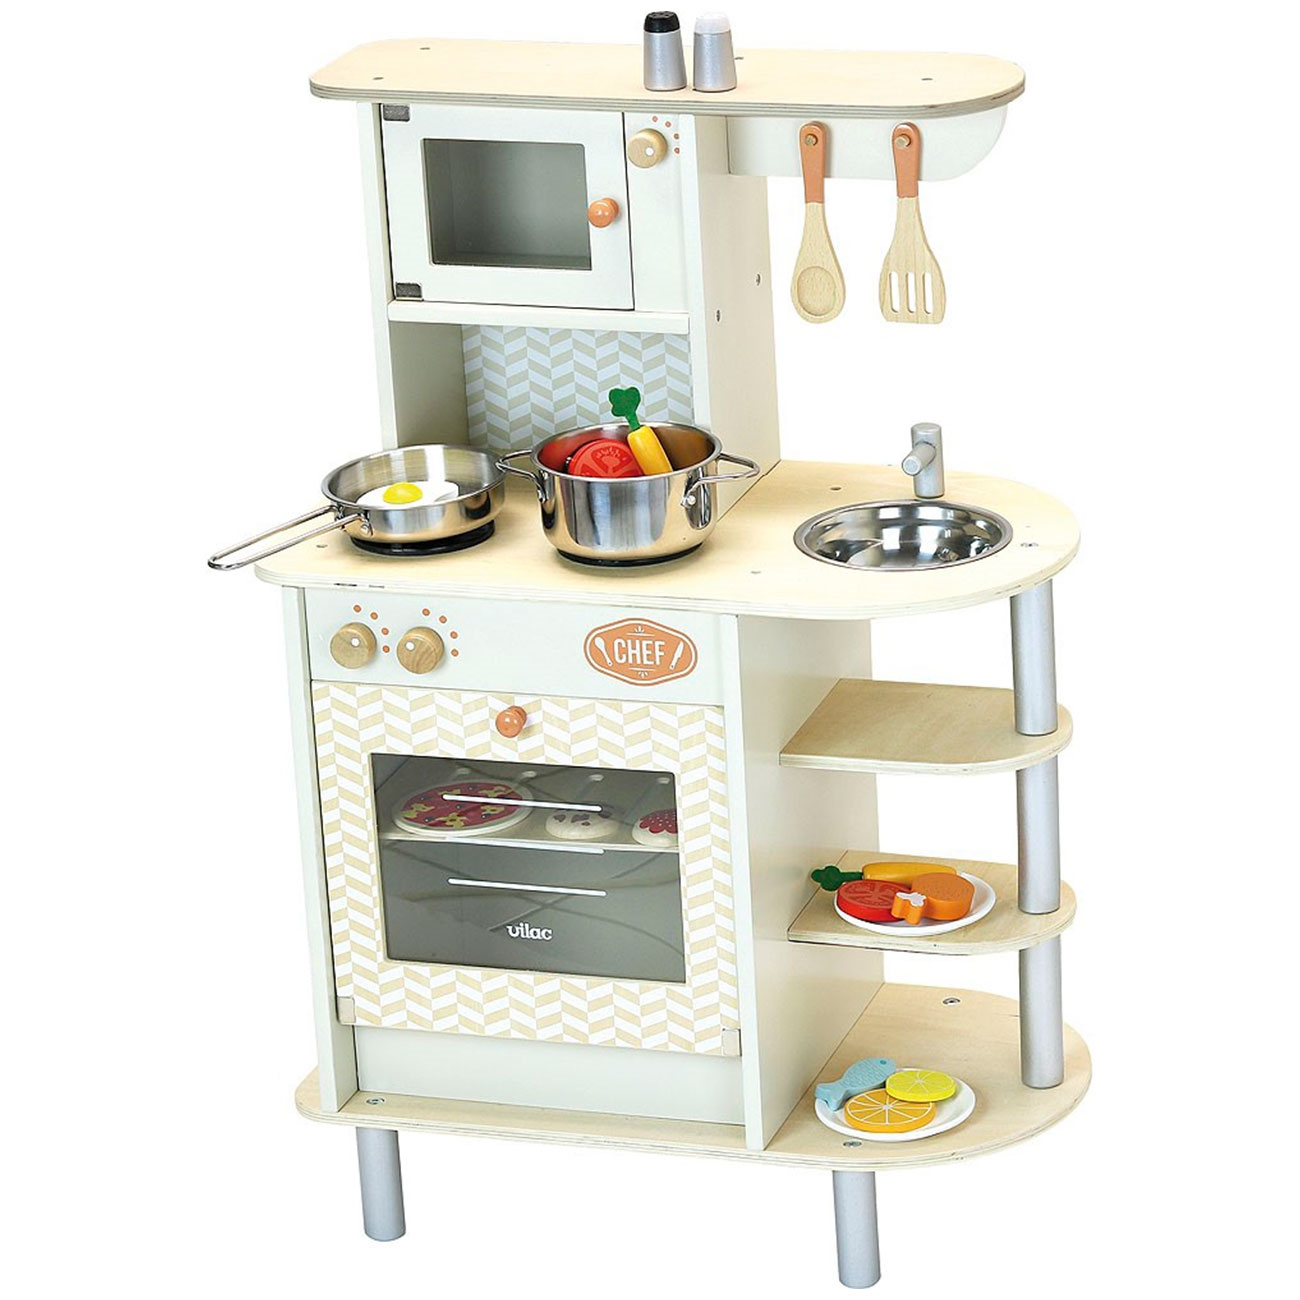 vilac-legekoekken-kitchen-leg-toys-play-chef-8110-1